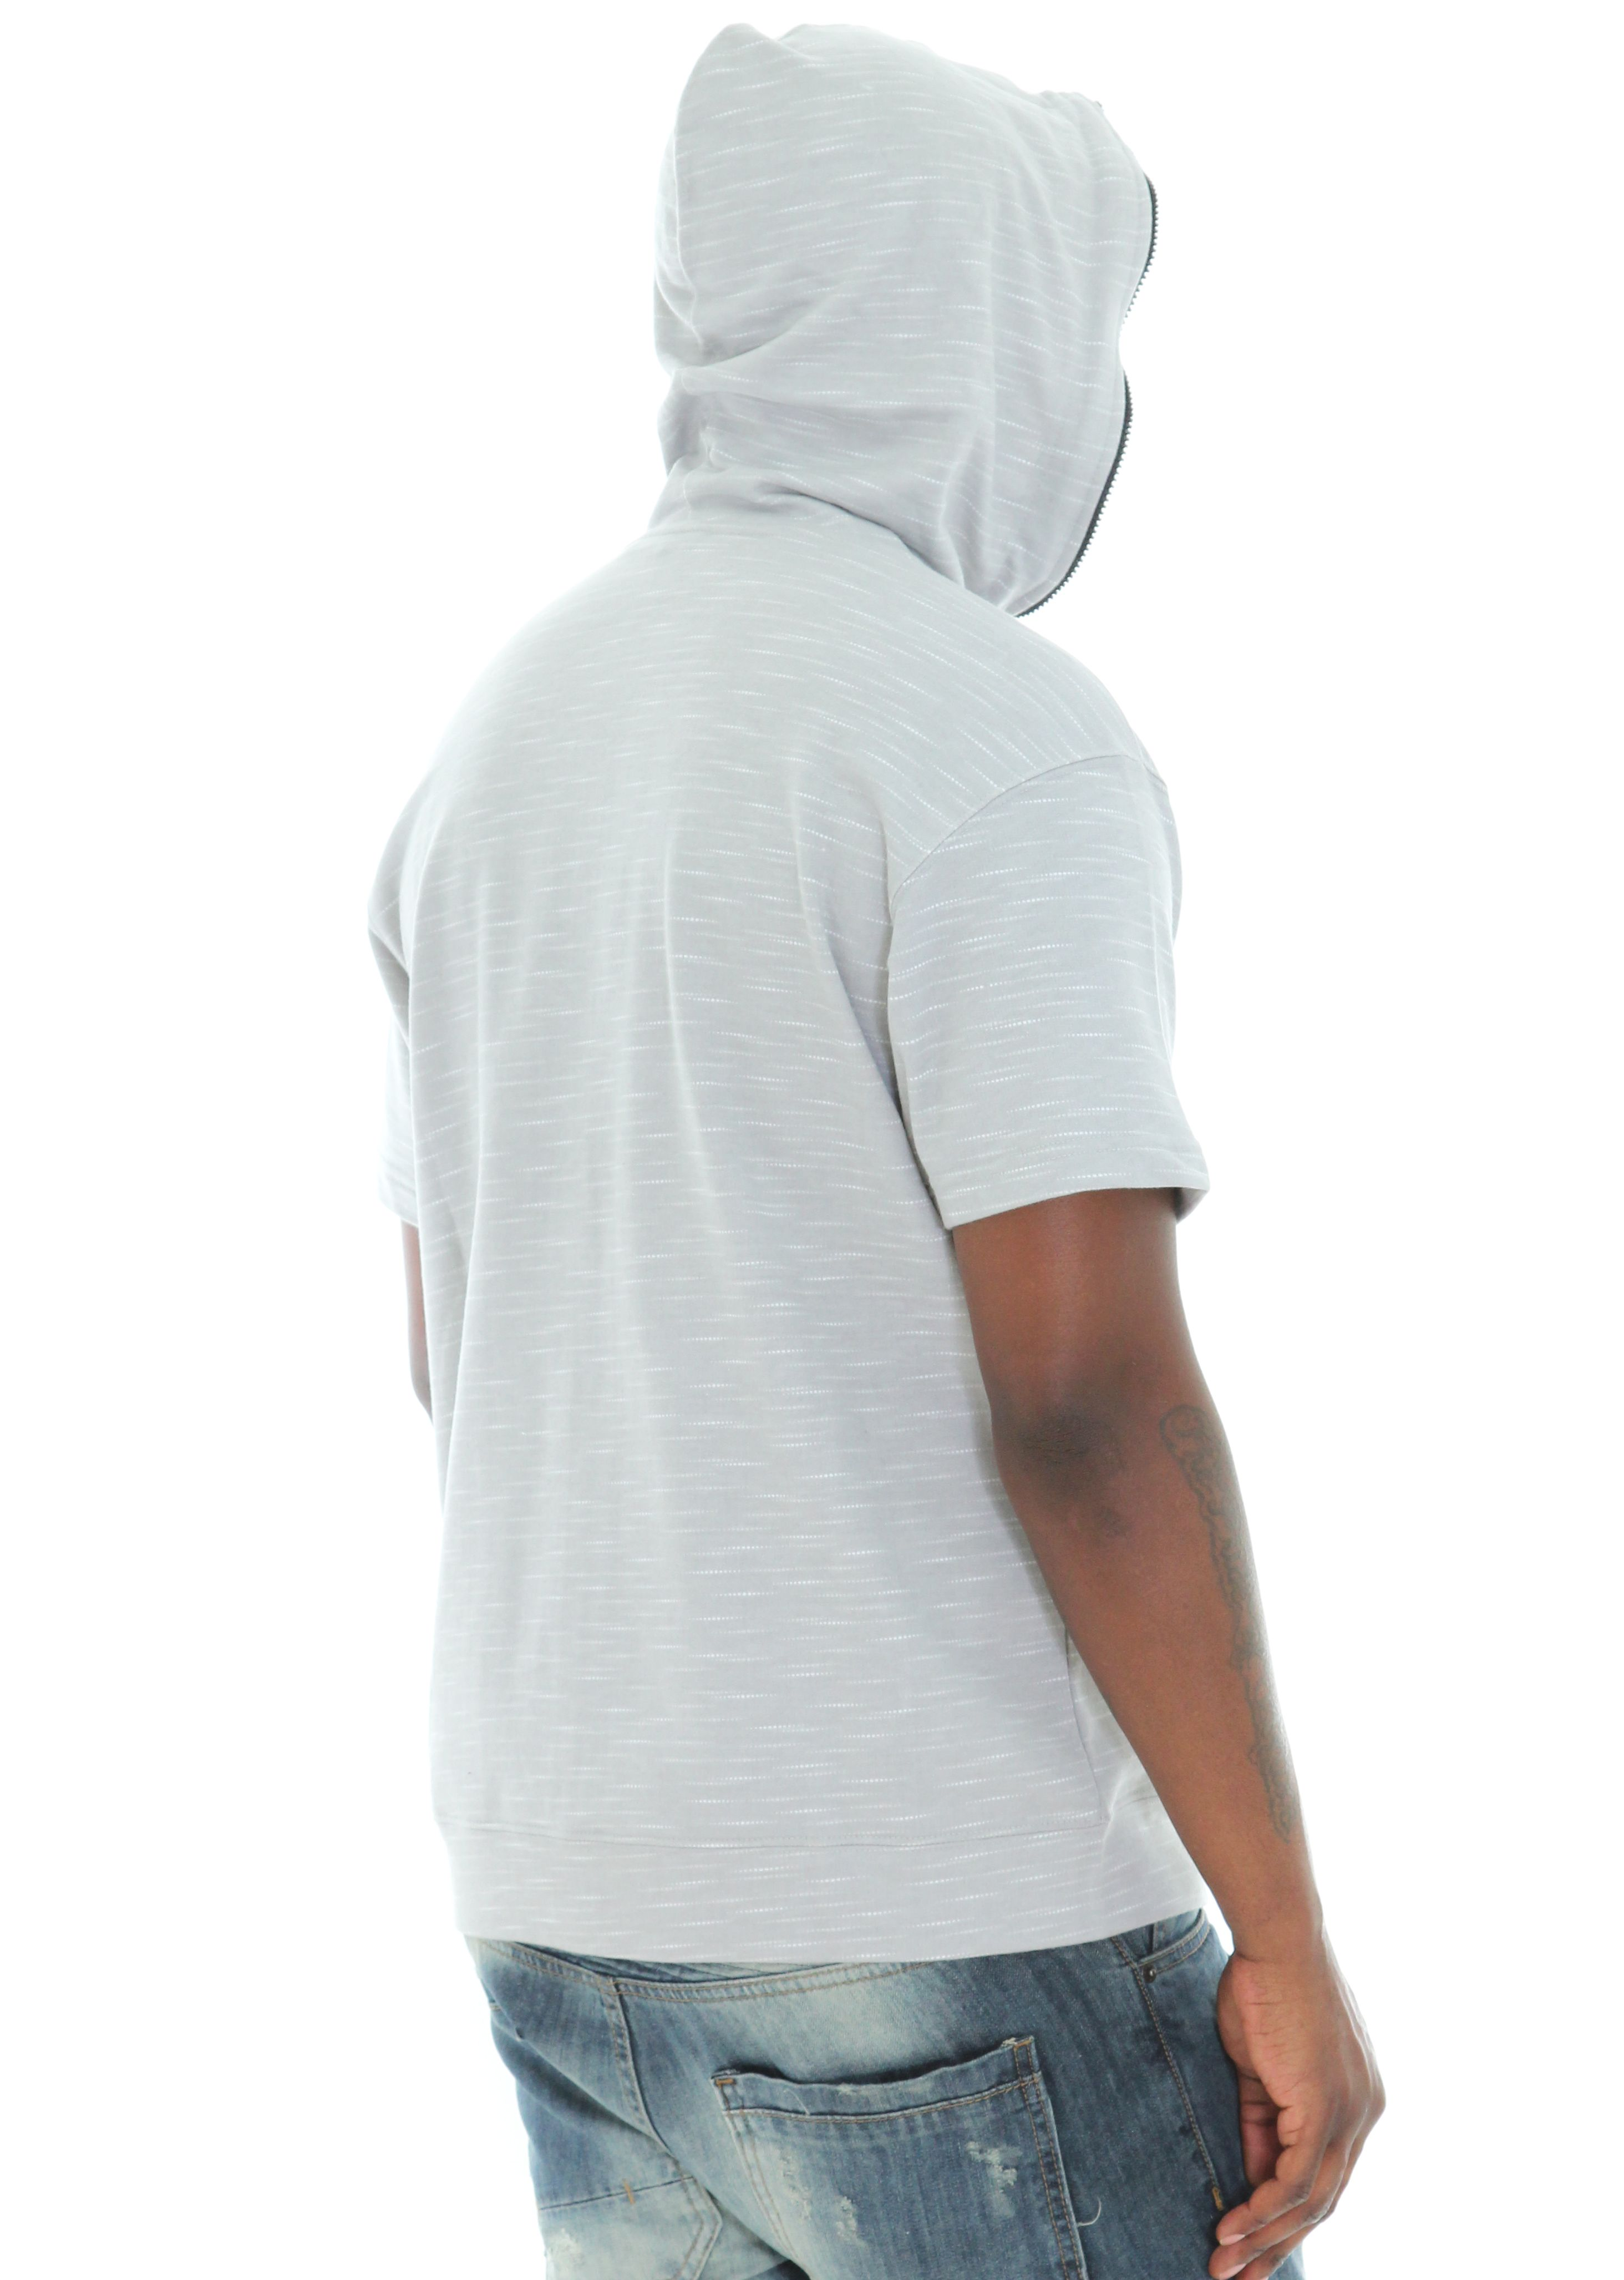 Hoodie that zips all the way up